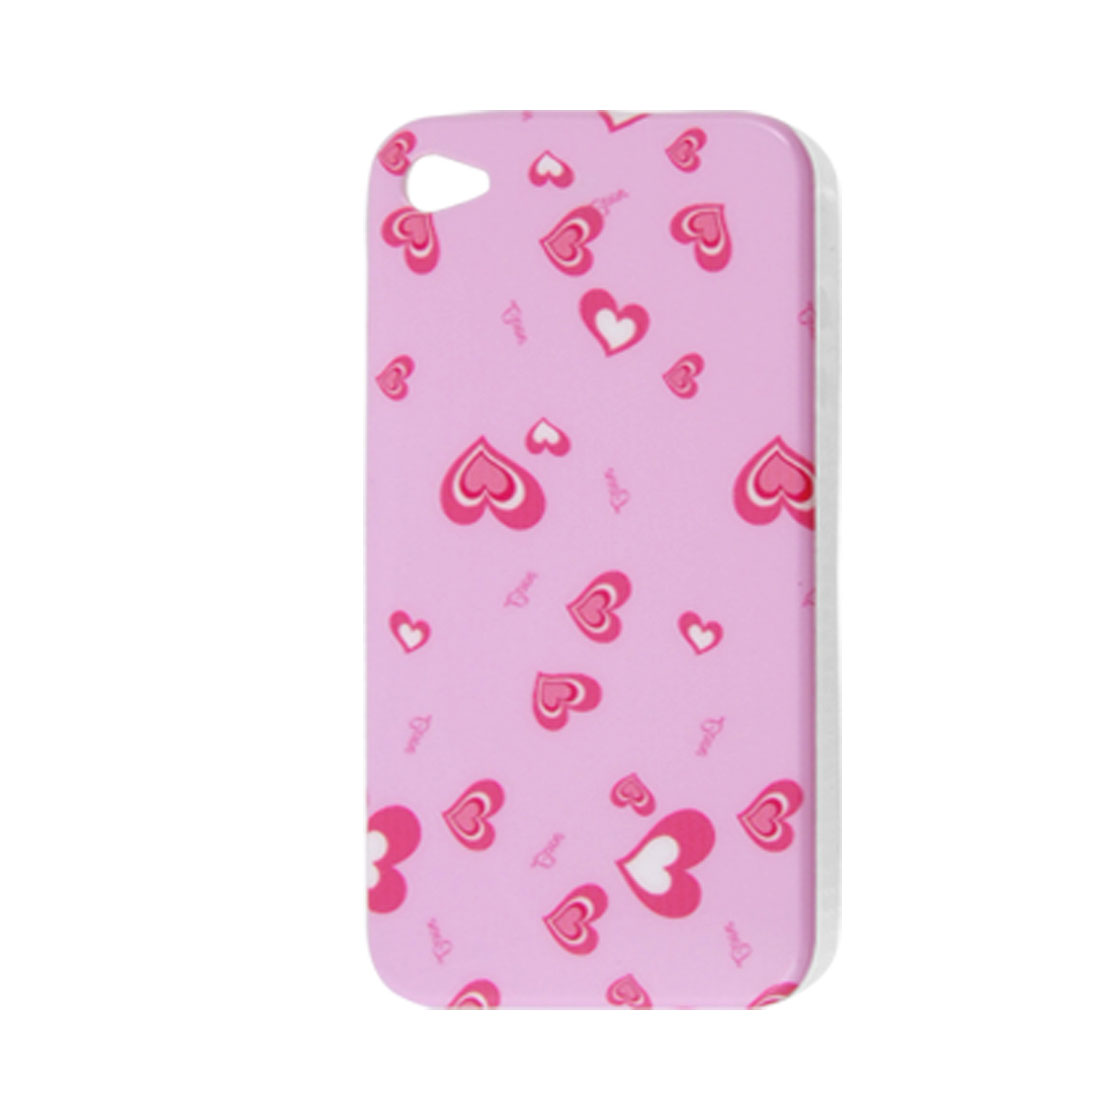 Pink Heart Print Hard Plastic IMD Back Case for iPhone 4 4G